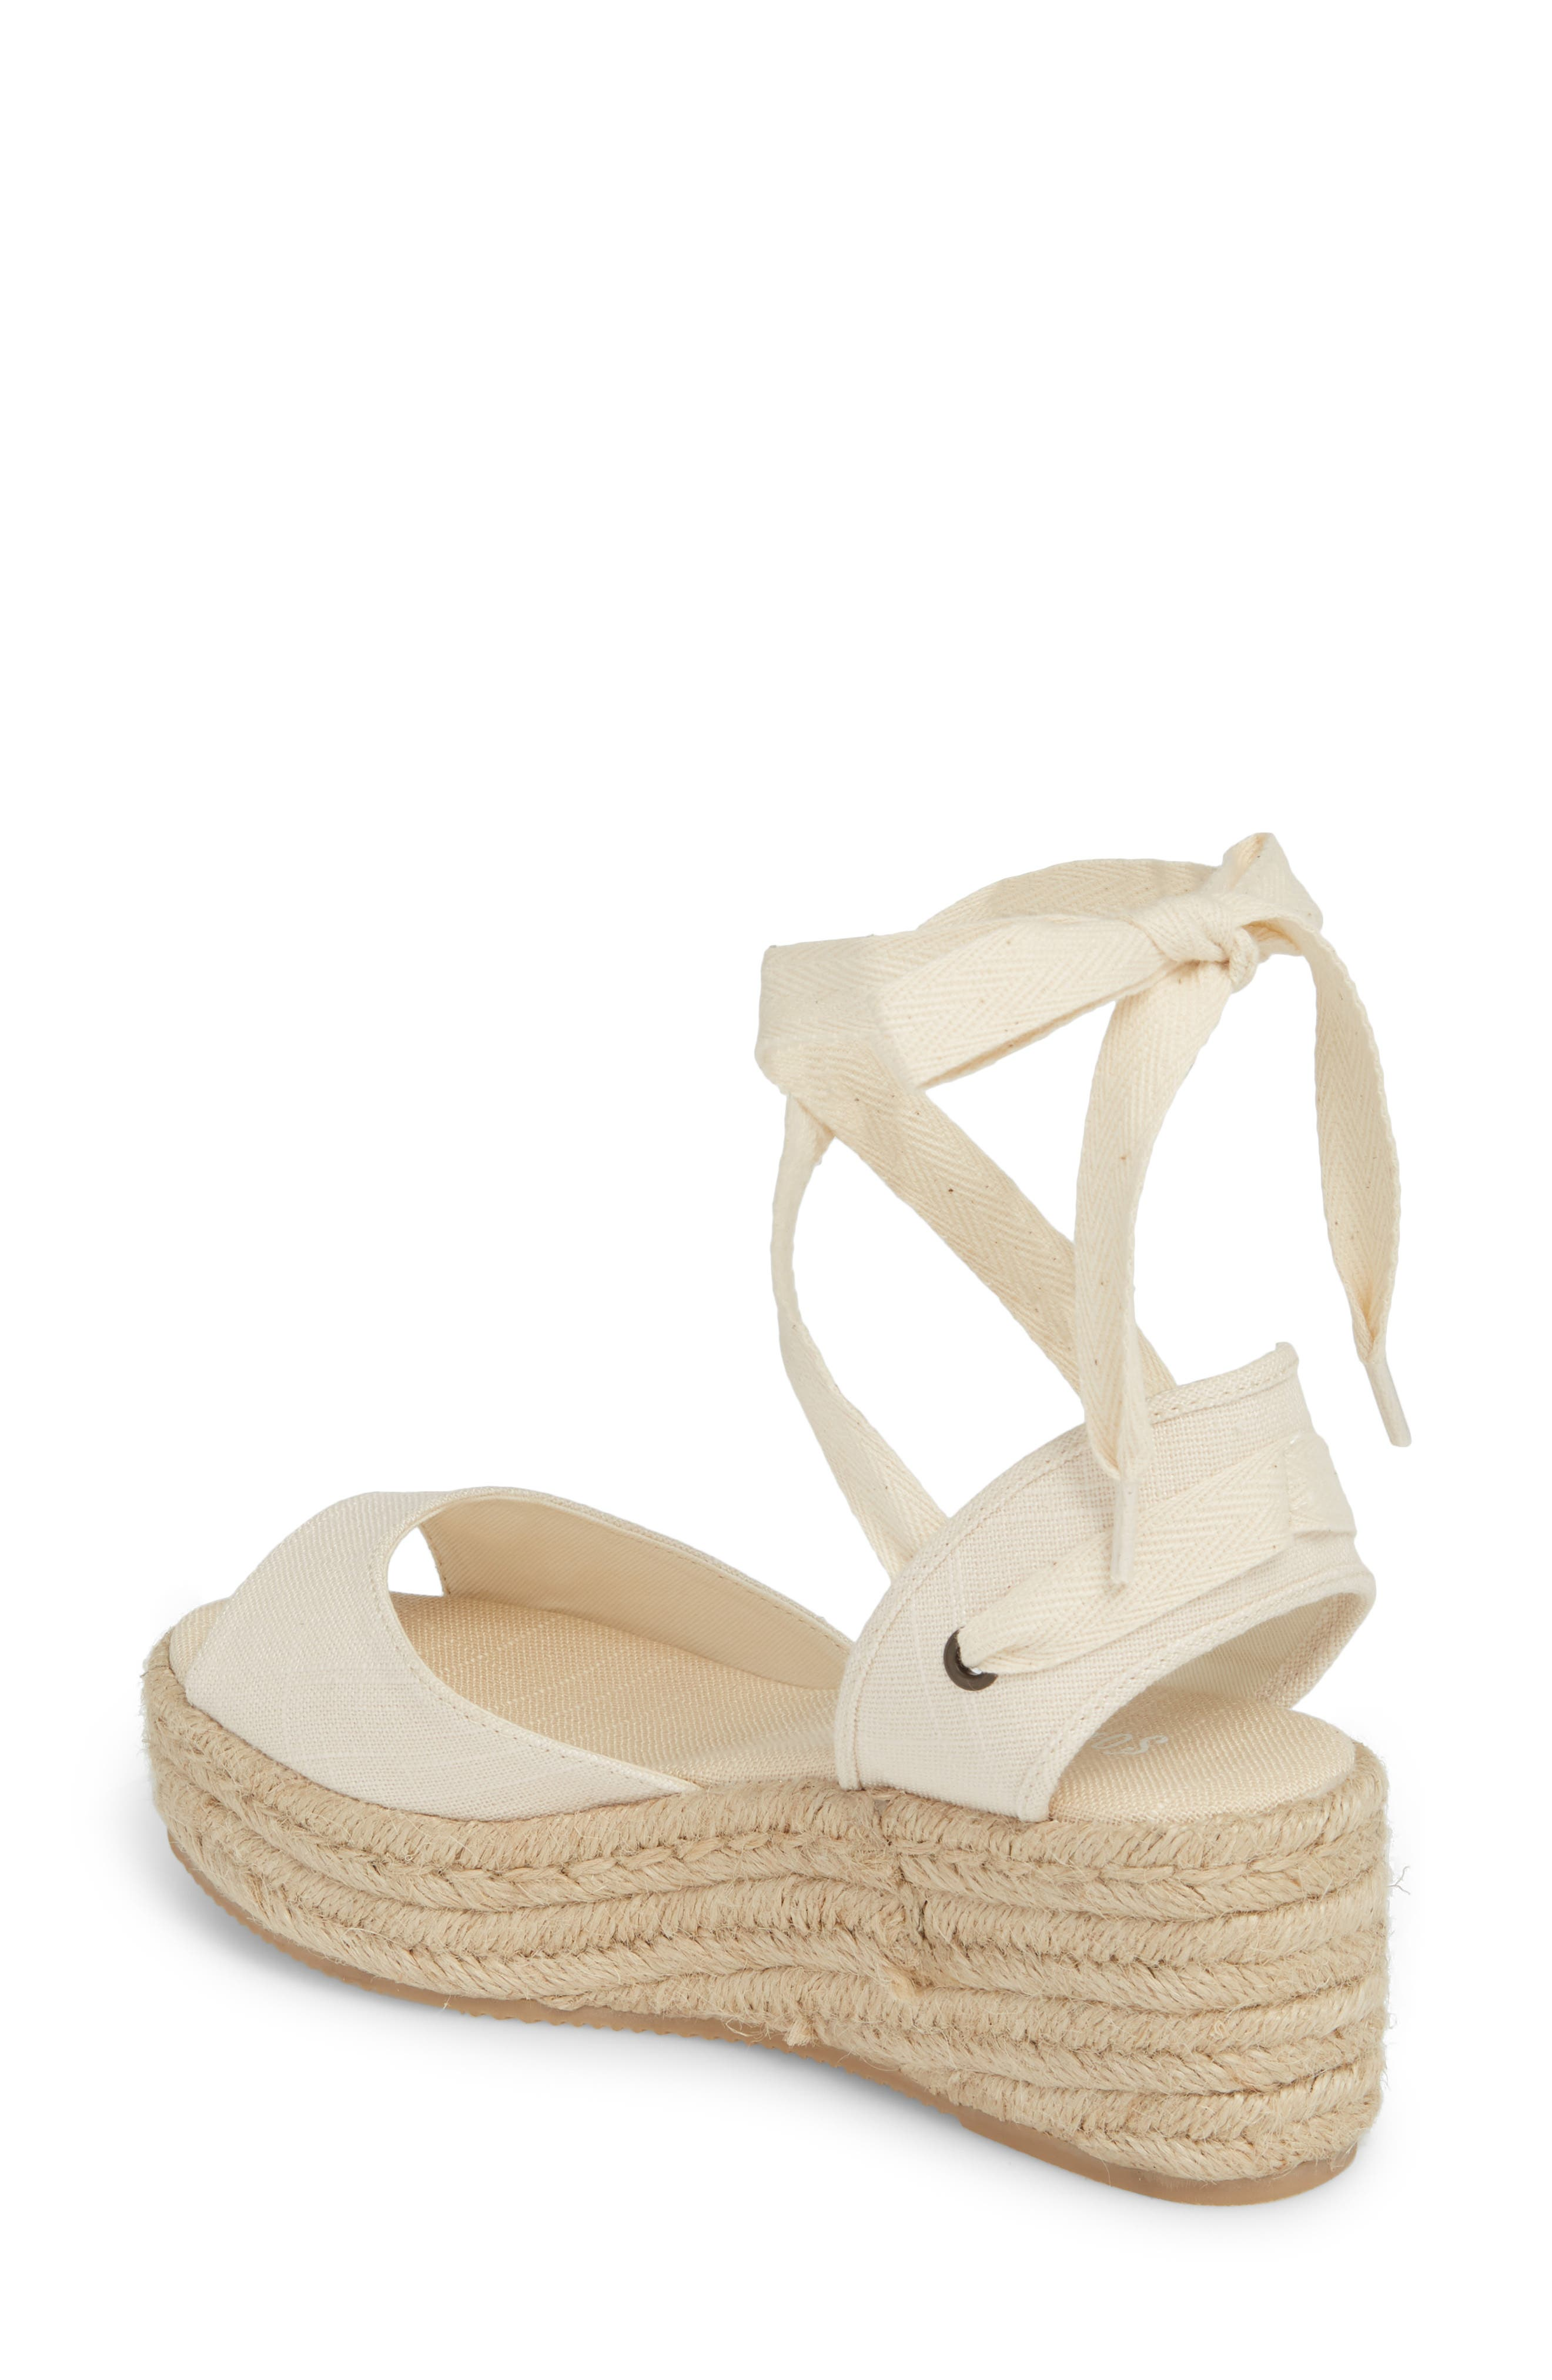 SOLUDOS, Espadrille Platform Sandal, Alternate thumbnail 2, color, BLUSH FABRIC